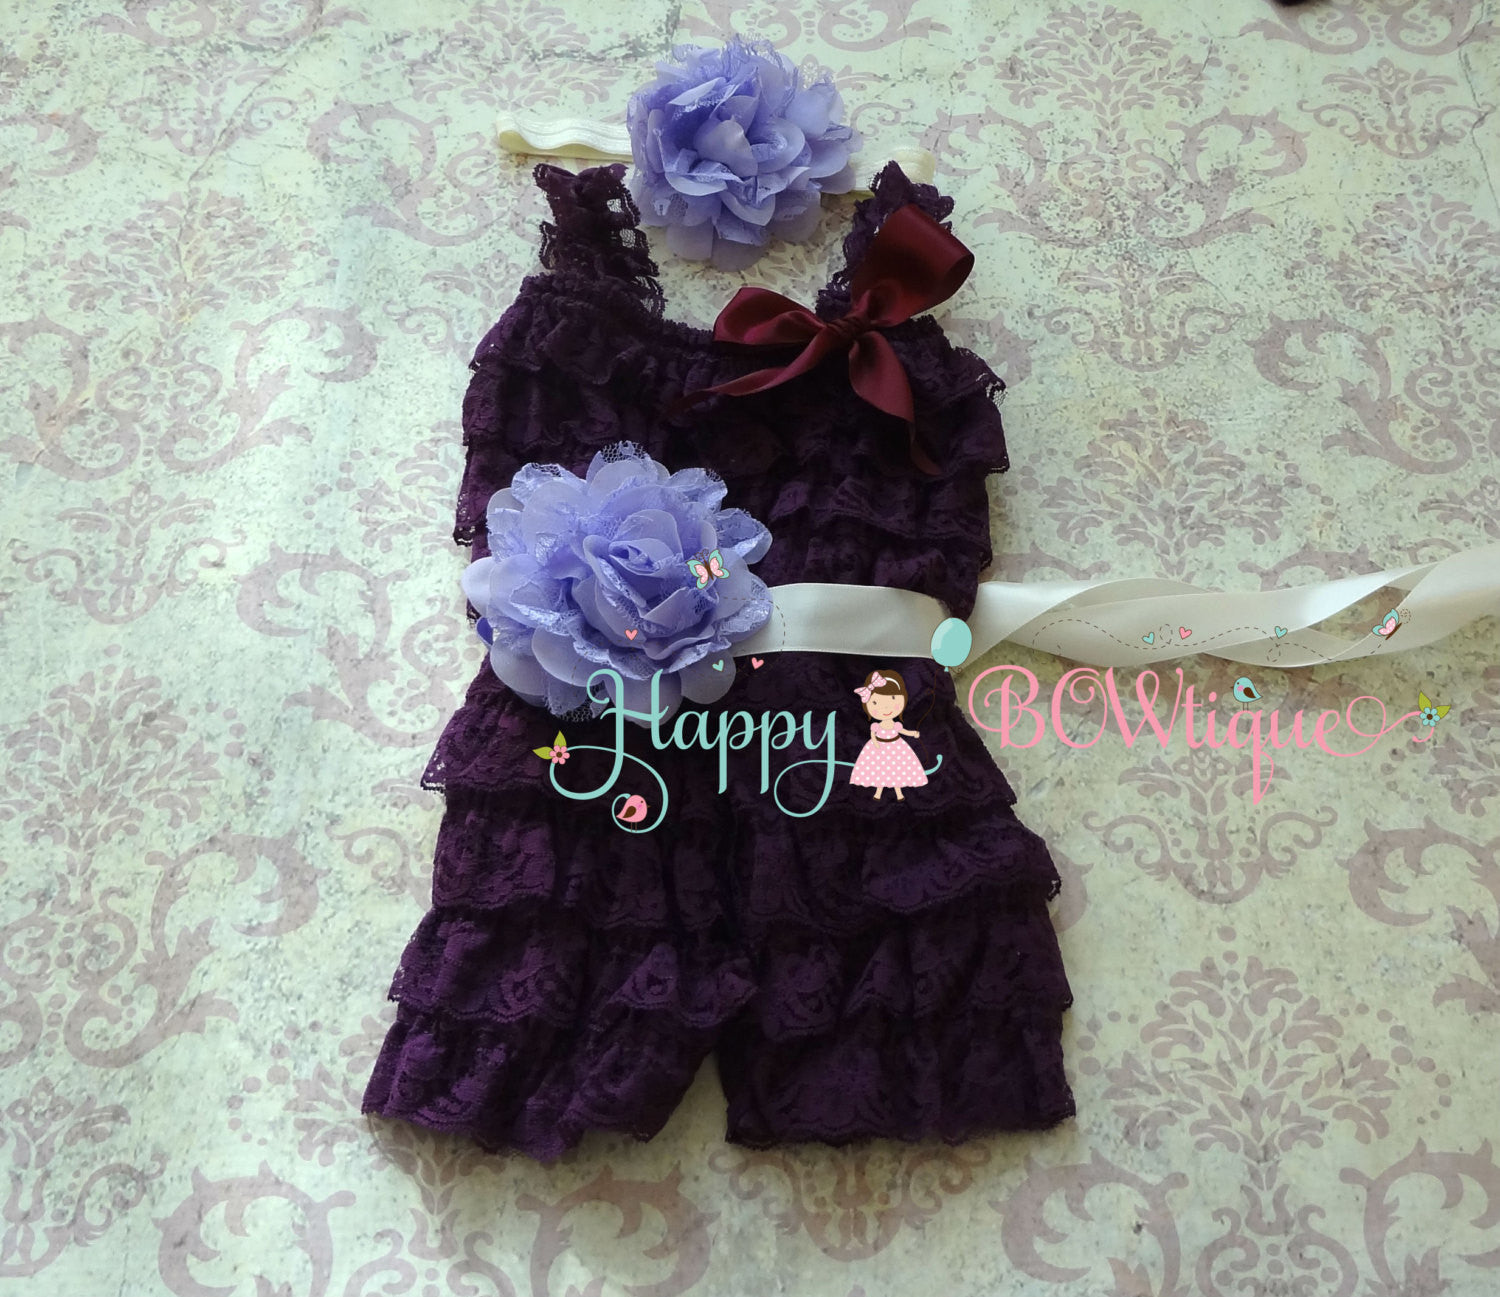 Purple Lavender Plum Flower lace Romper set - Happy BOWtique - children's clothing, Baby Girl clothing